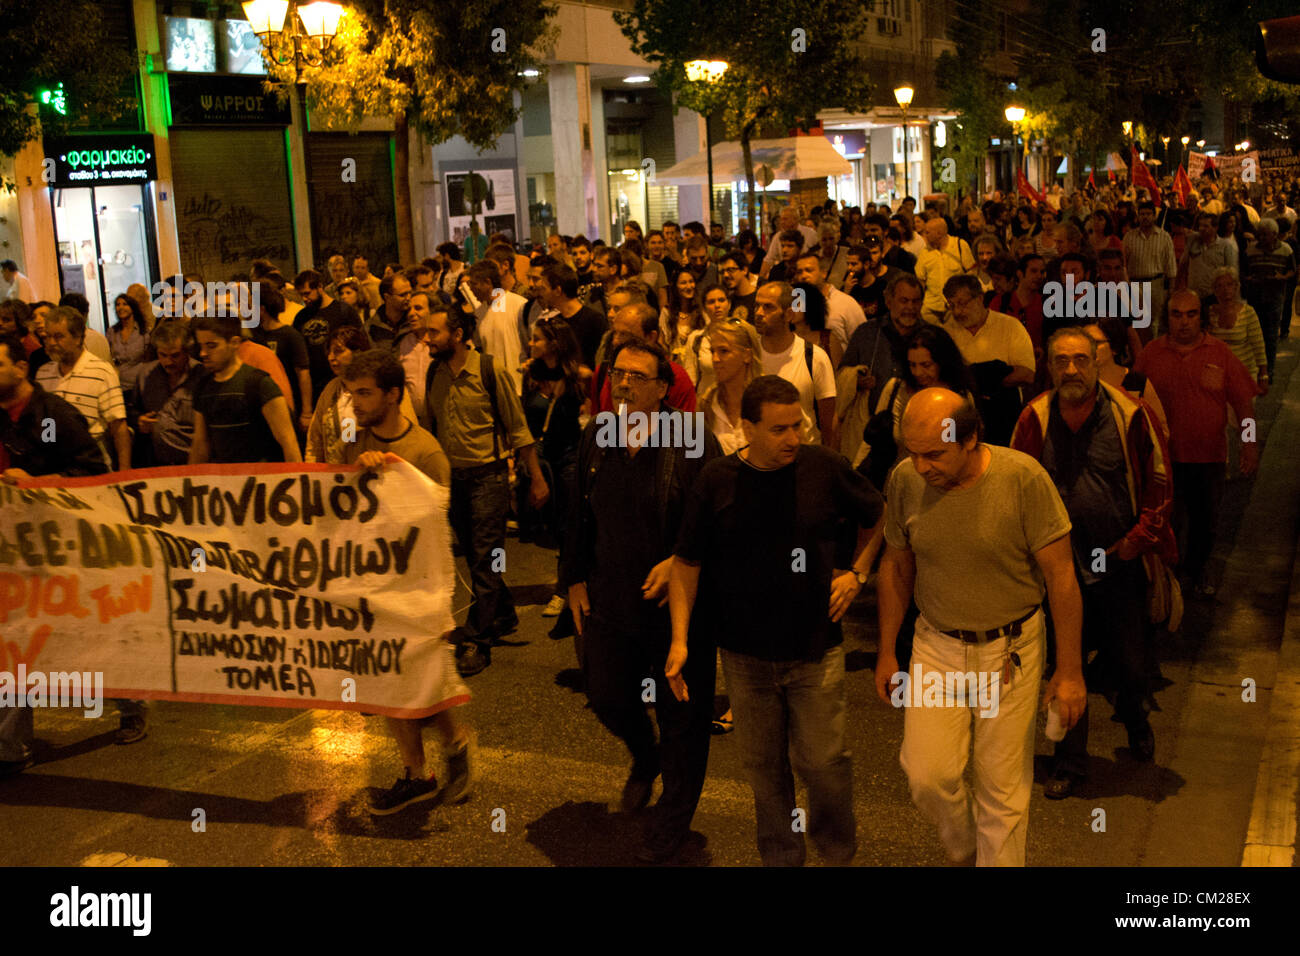 Athens, Greece, 18th September 2012. Unions members protest over the new upcoming austerity measures and the overthrow - Stock Image